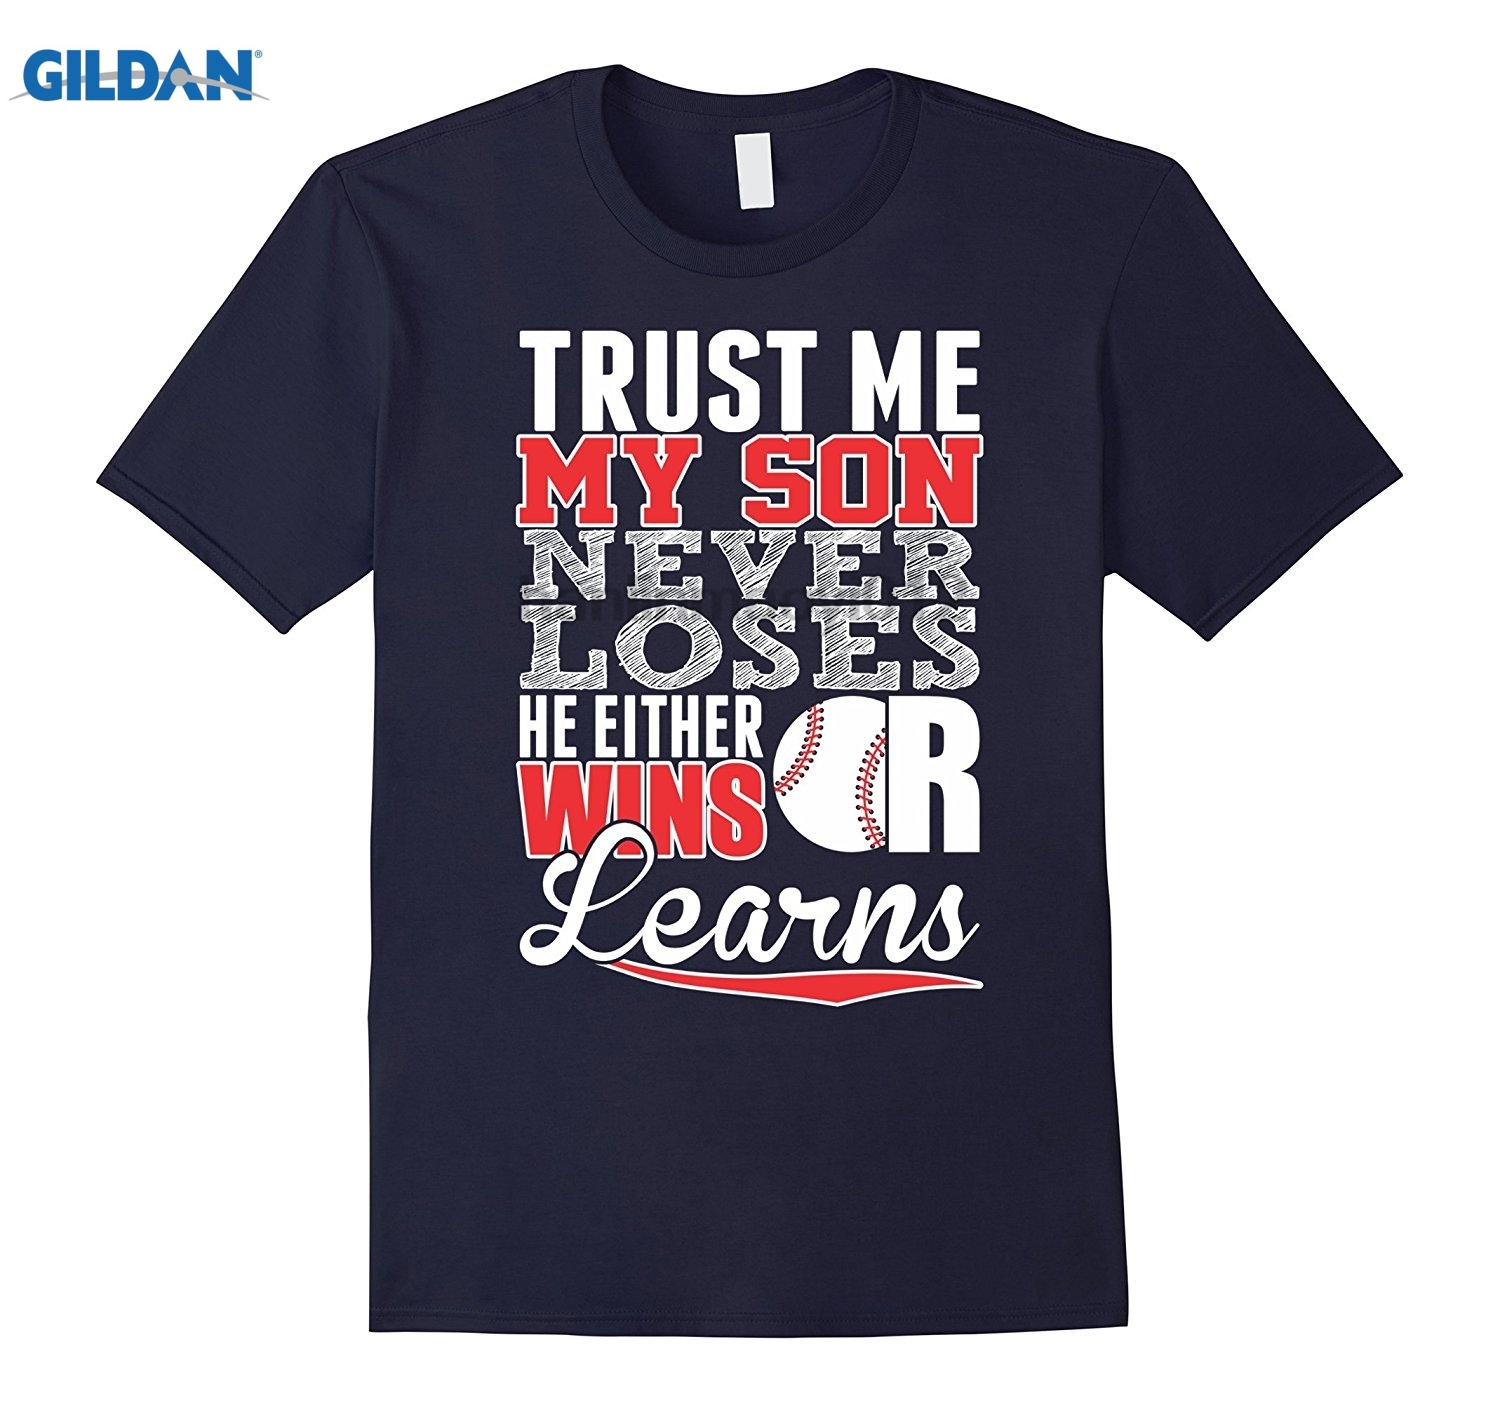 GILDAN Trust Me My Son Never Loses He Either Wins Or Learns TShirt Hot Womens T-shirt